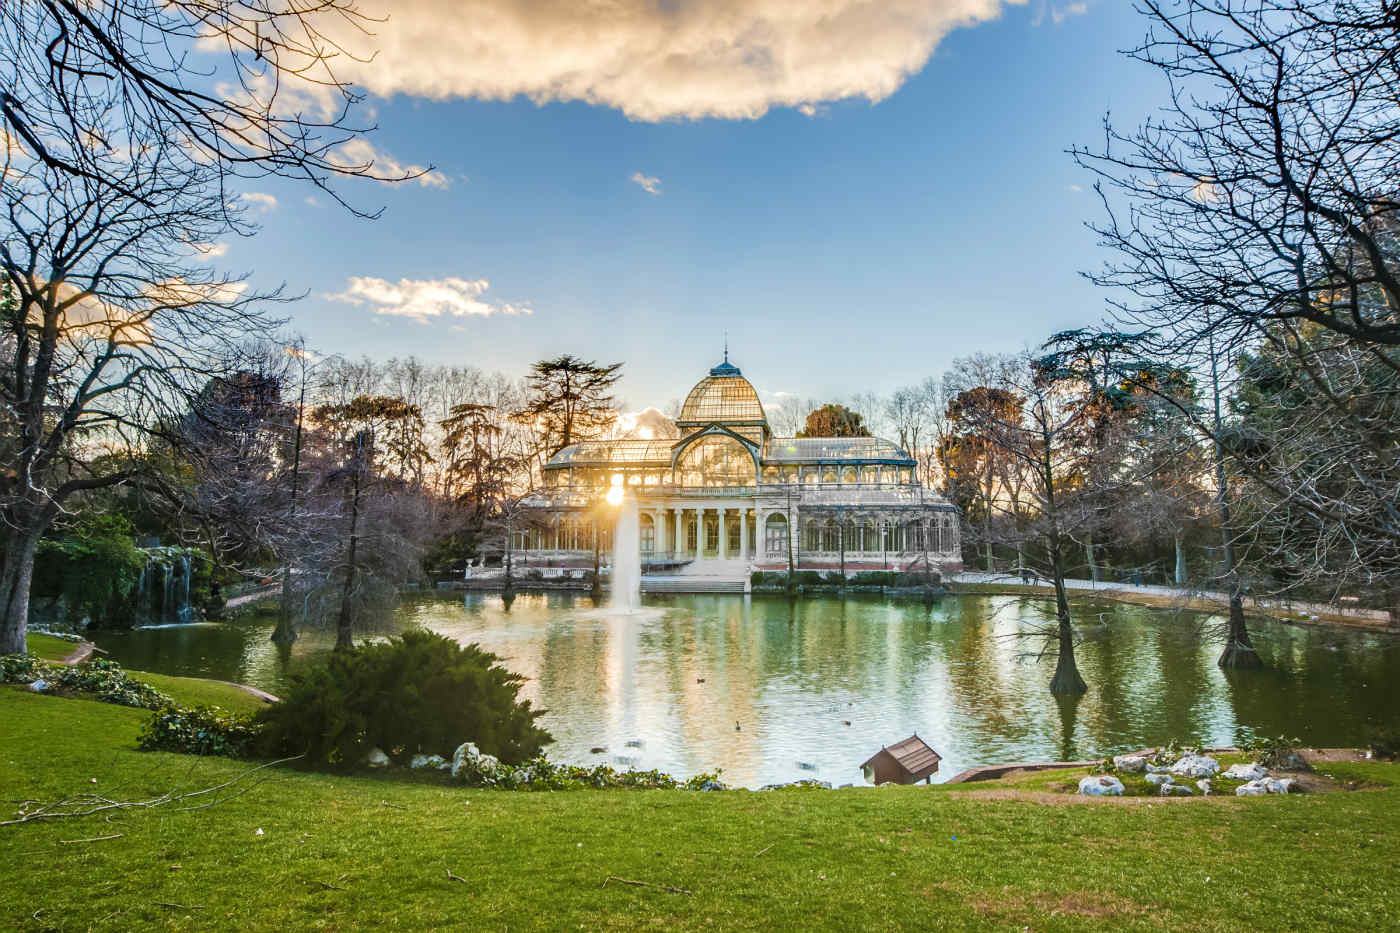 Crystal Palace at Retiro Park • Madrid, Spain